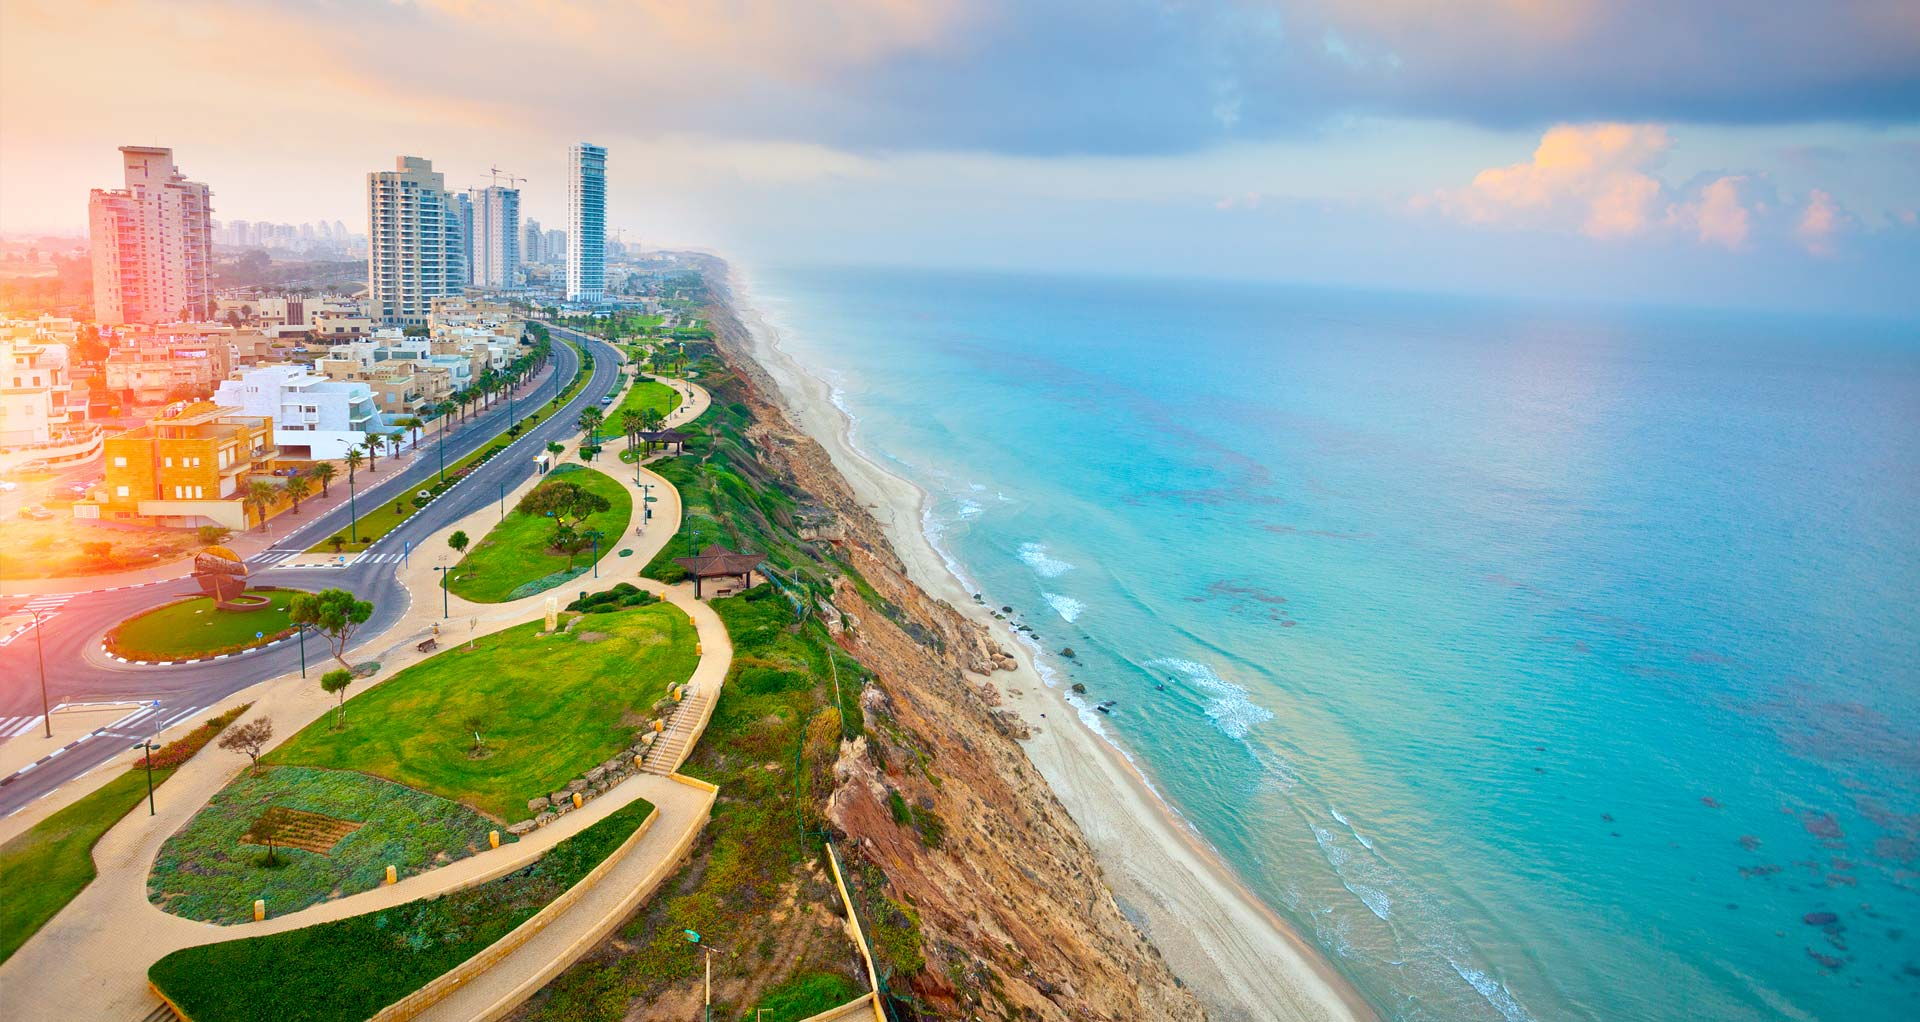 Make Israel Your Next Great Vacation Destination